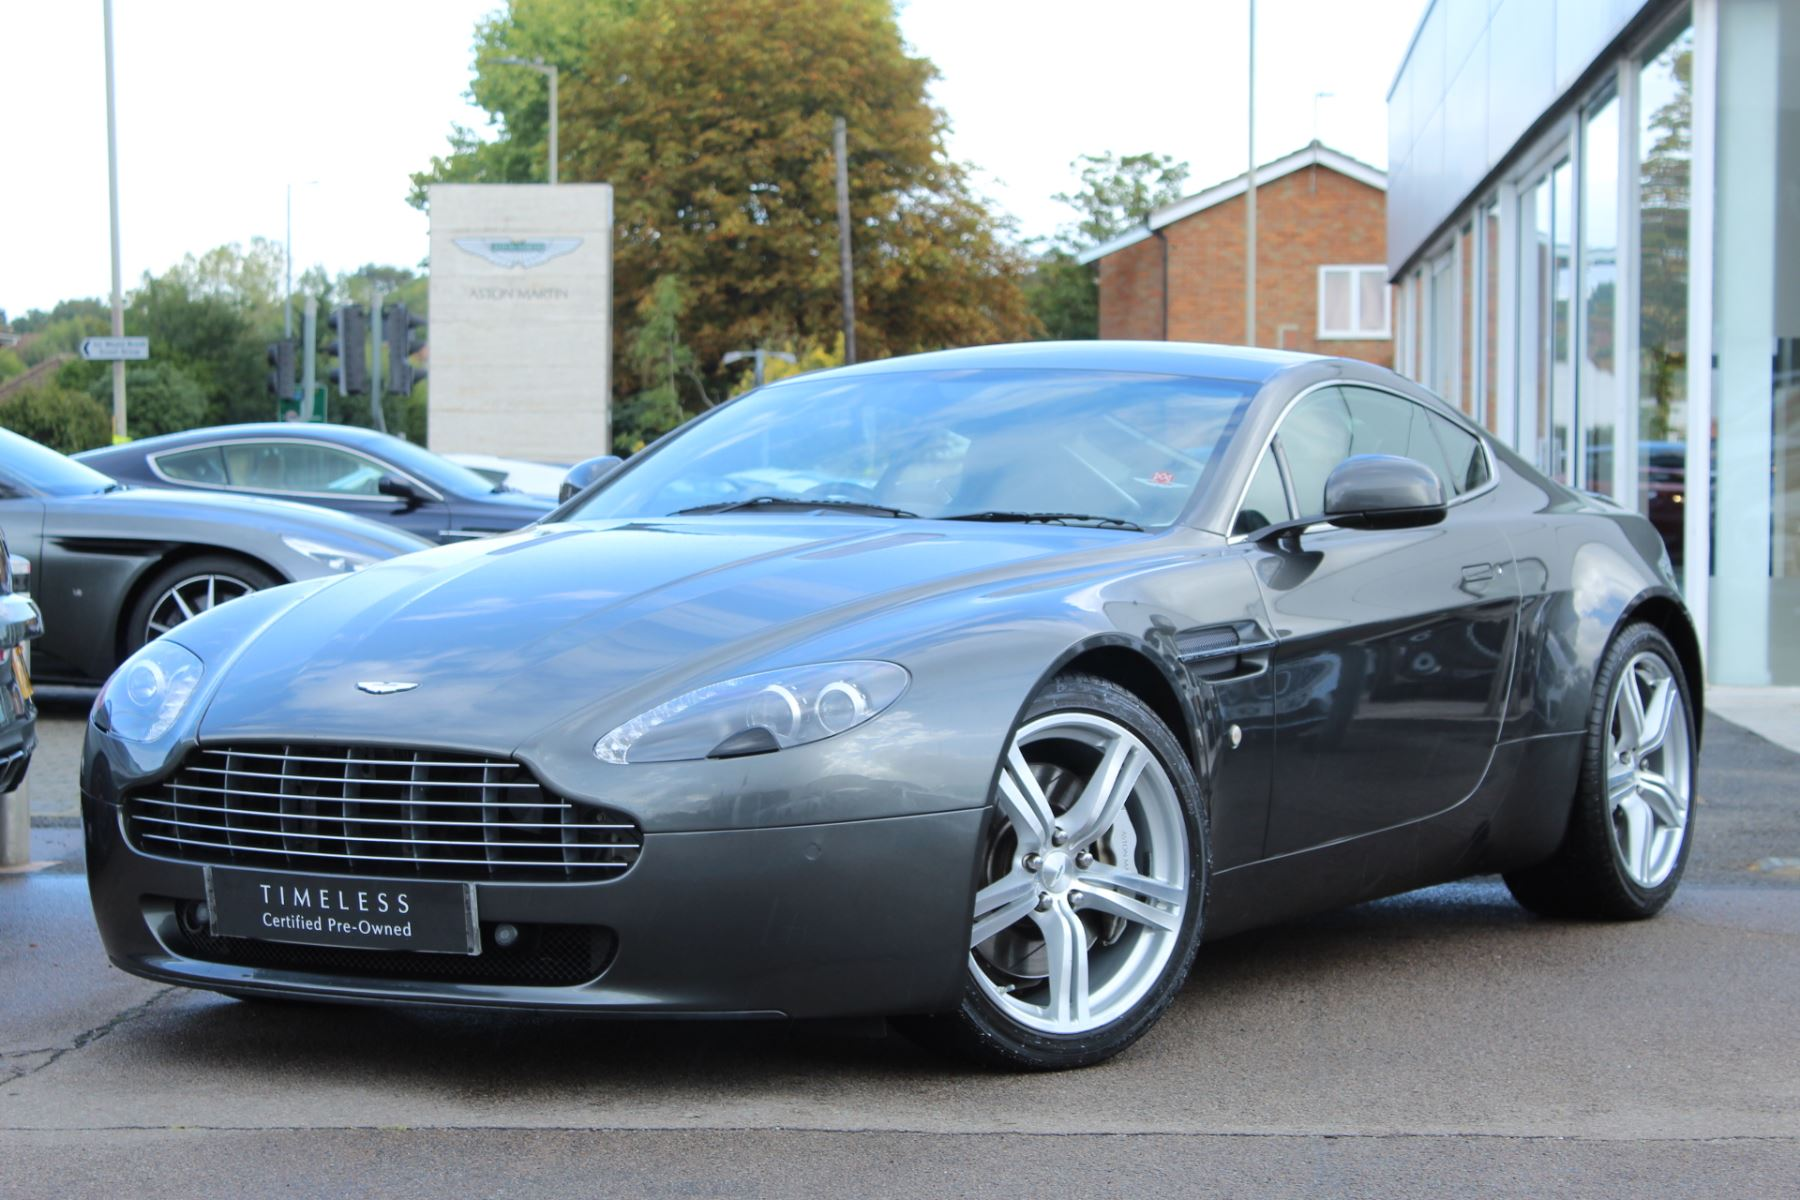 Aston Martin V8 Vantage Coupe 2dr Sportshift [420] 4.7 Sports Shift 3 door Coupe (2010) image